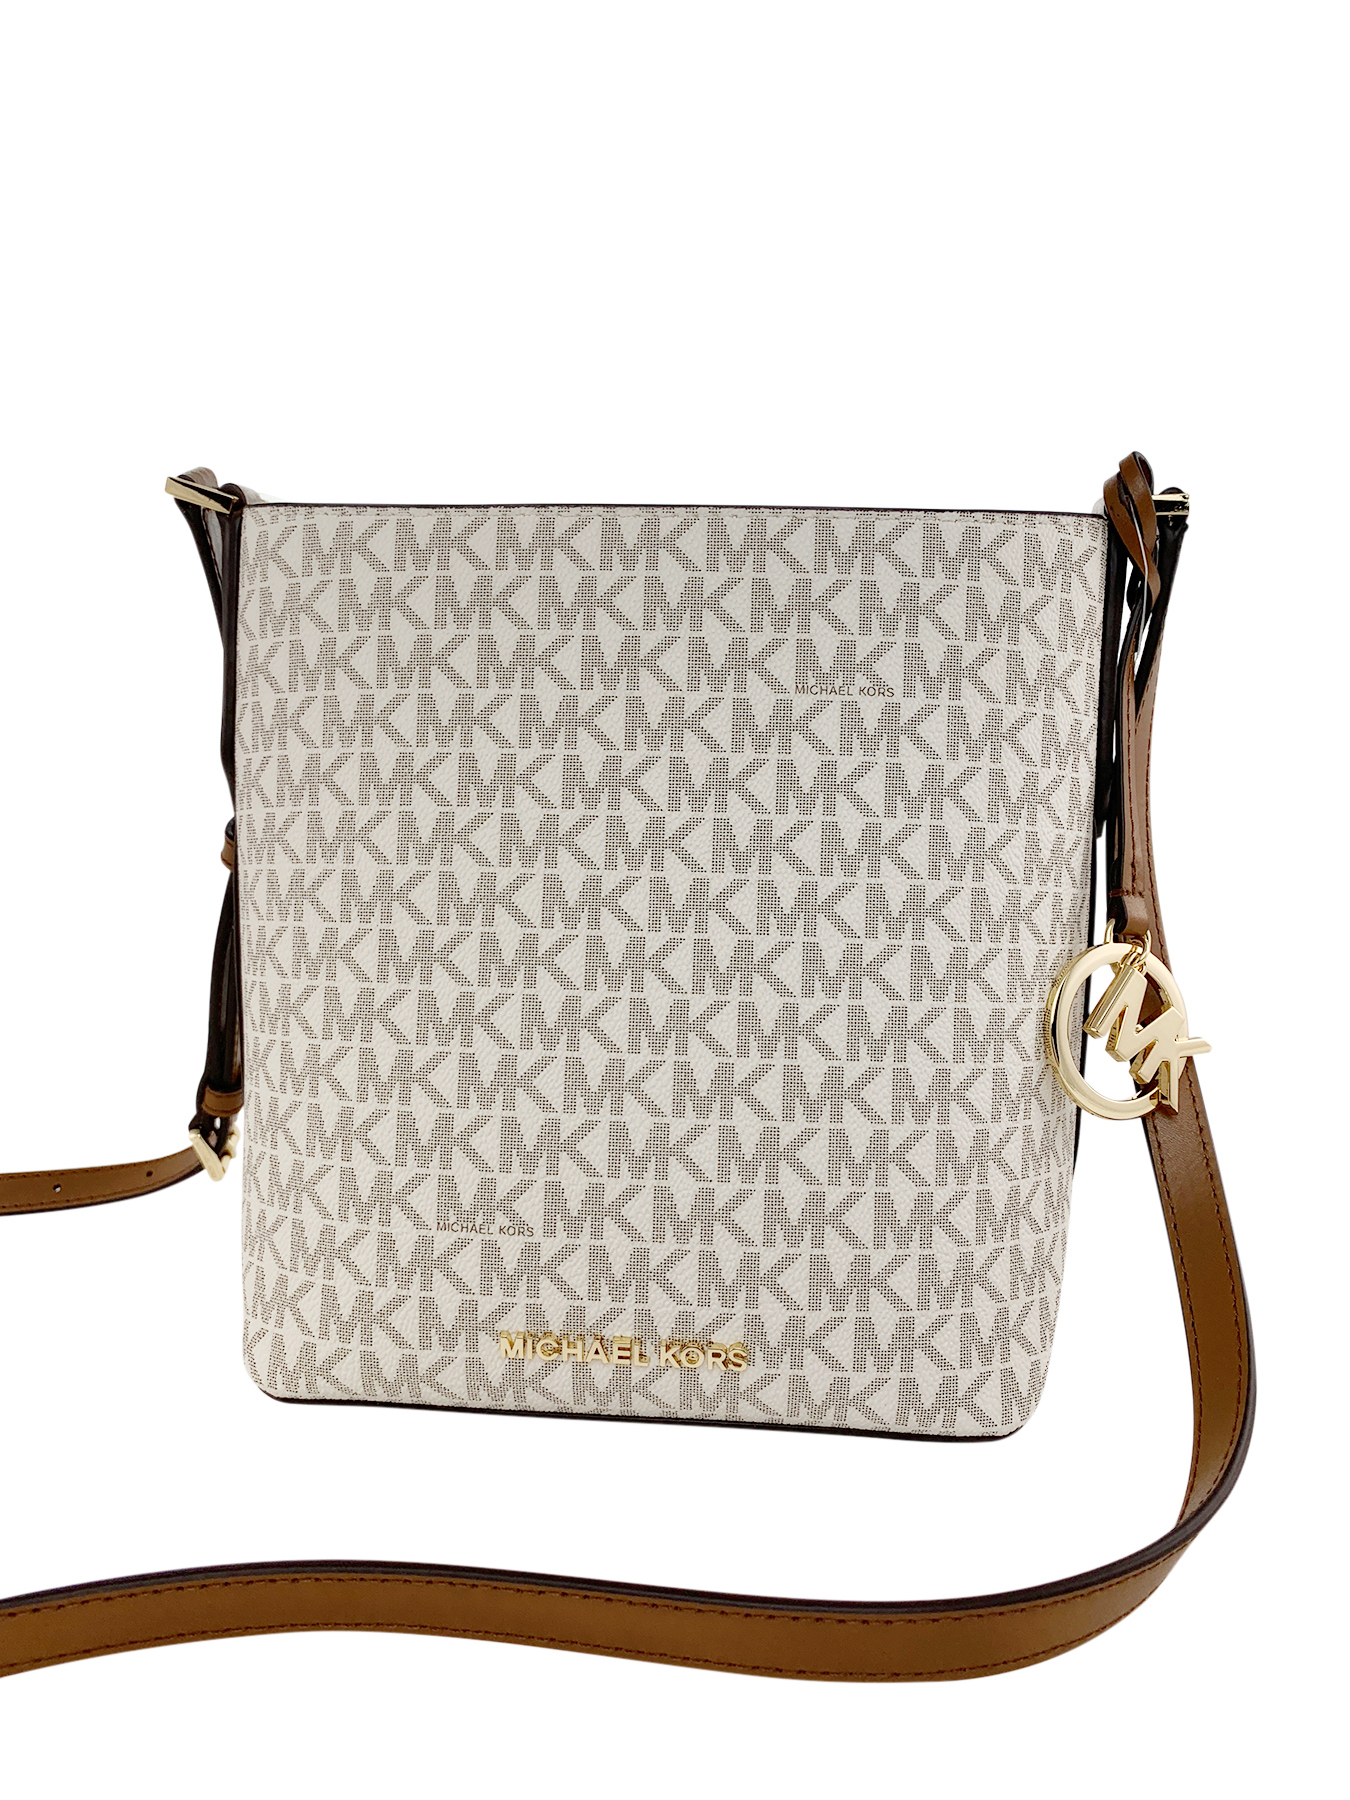 f3e594e08c1b Michael Kors Kimberly Bucket Crossbody Bag Messenger Vanilla MK Acorn